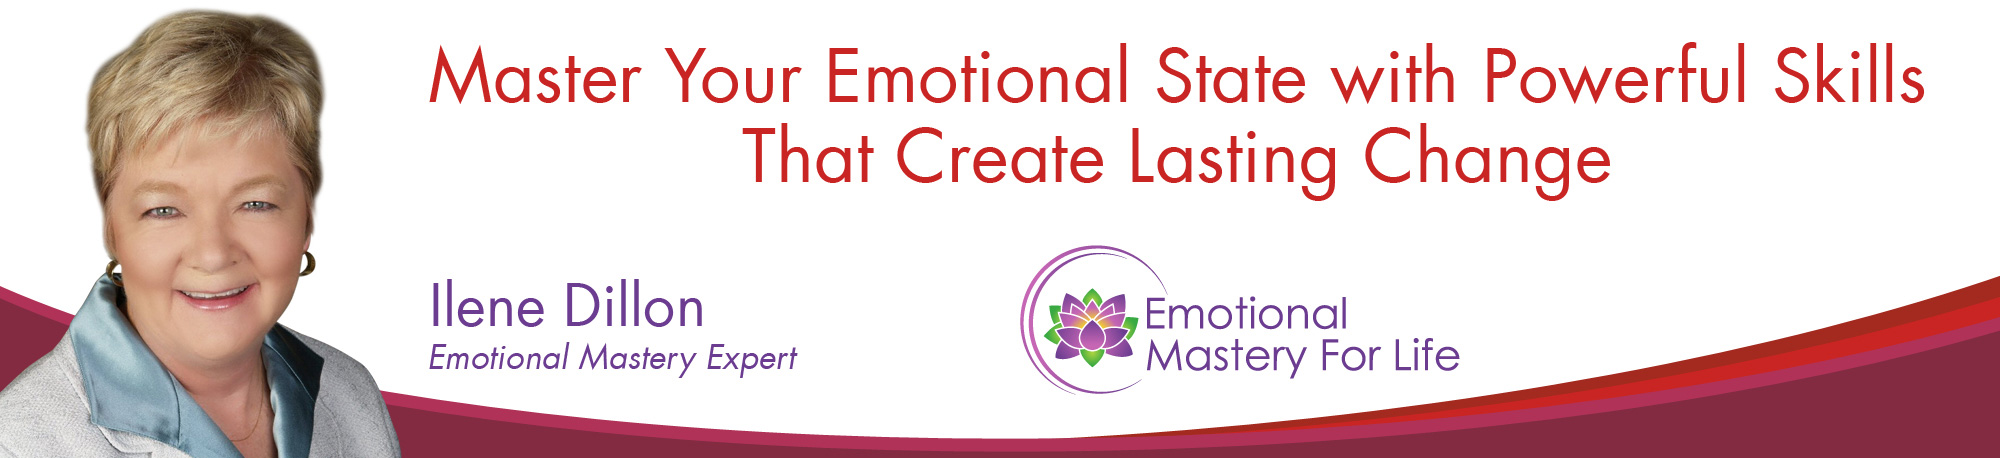 Emotional Mastery for Life